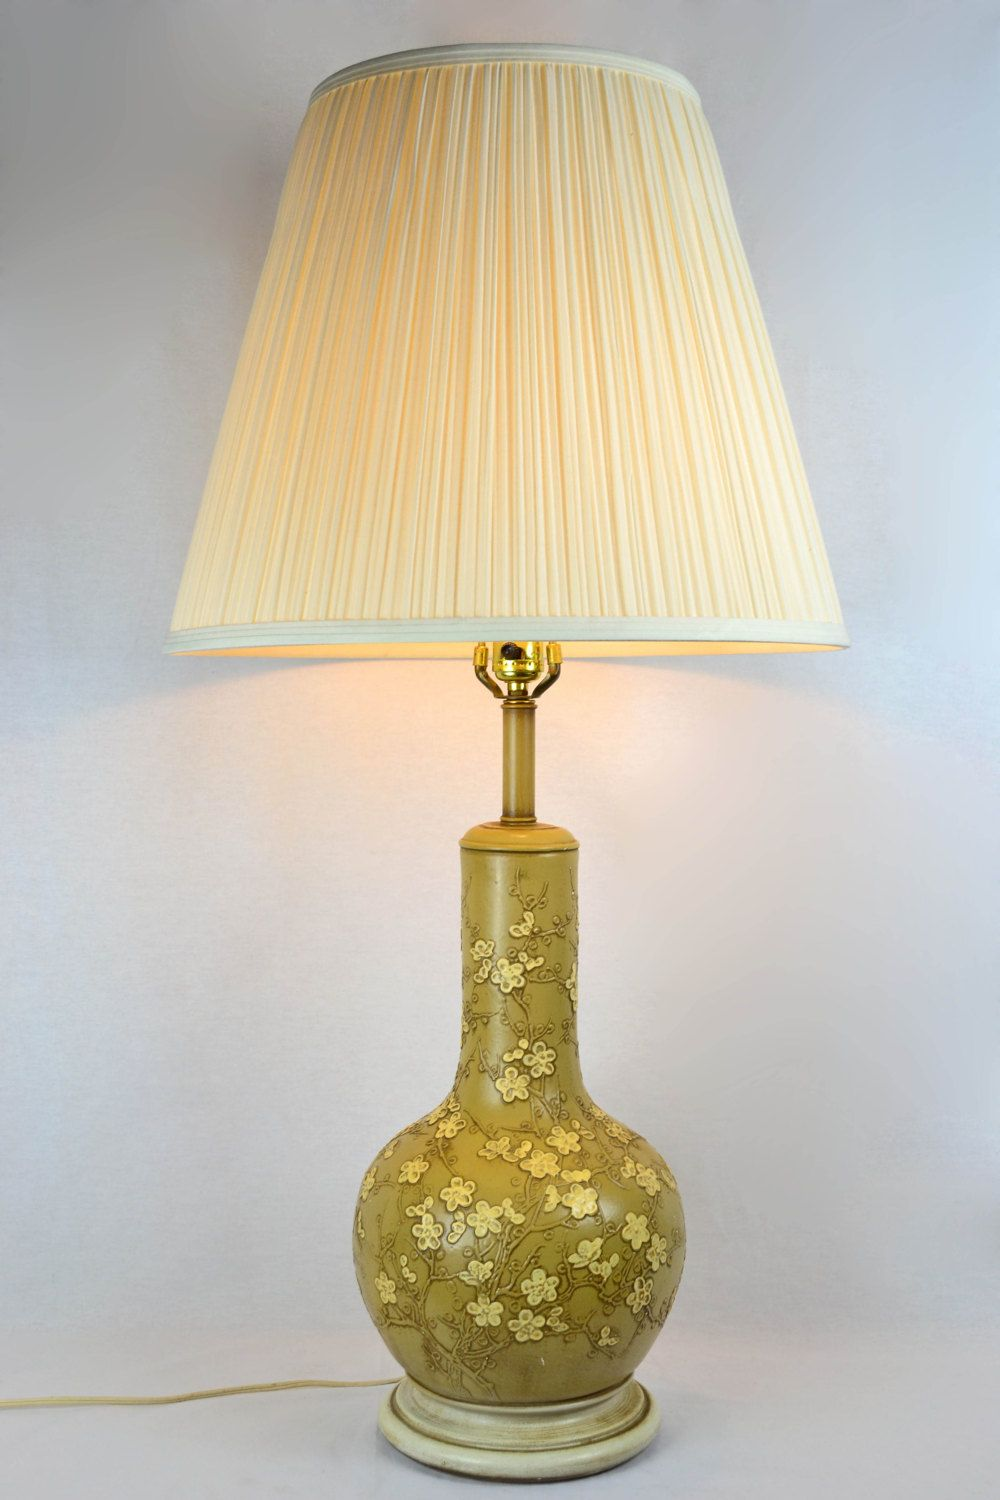 Large Vintage Ceramic Table Lamp With Yellow Flowers By Offcentermodern On Etsy